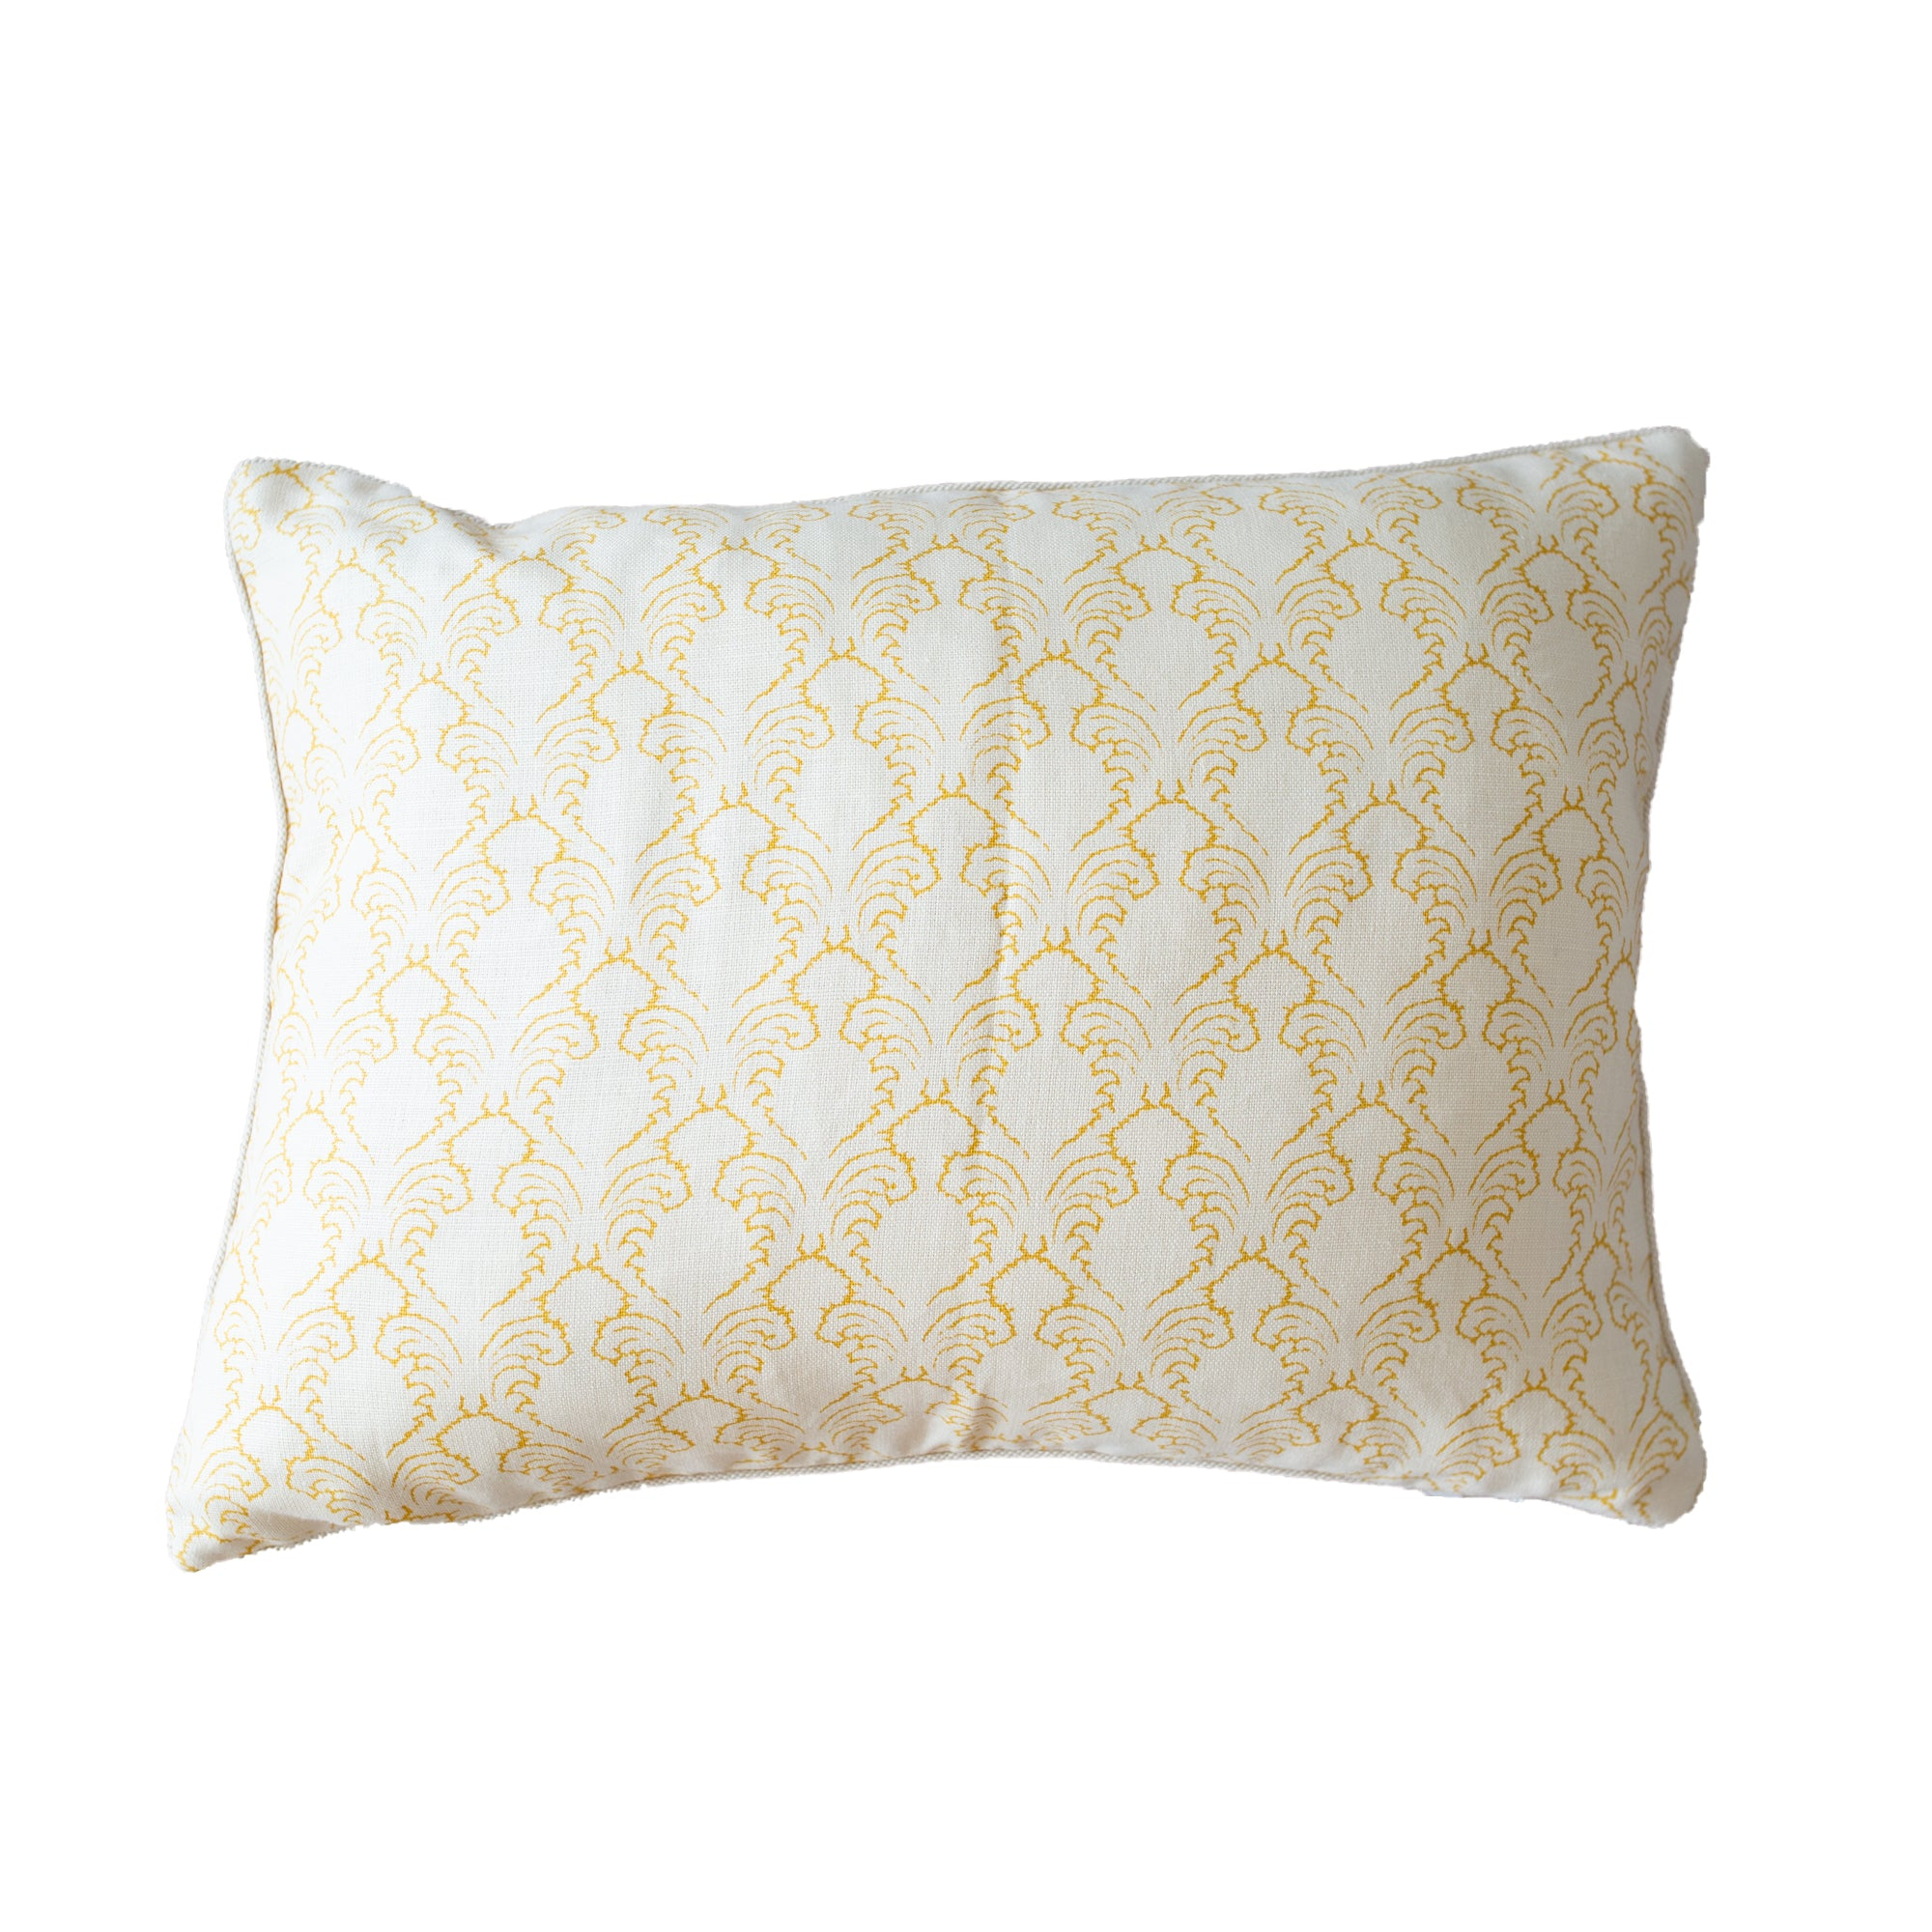 Pineapple Frond Pillow - Amy Berry Home